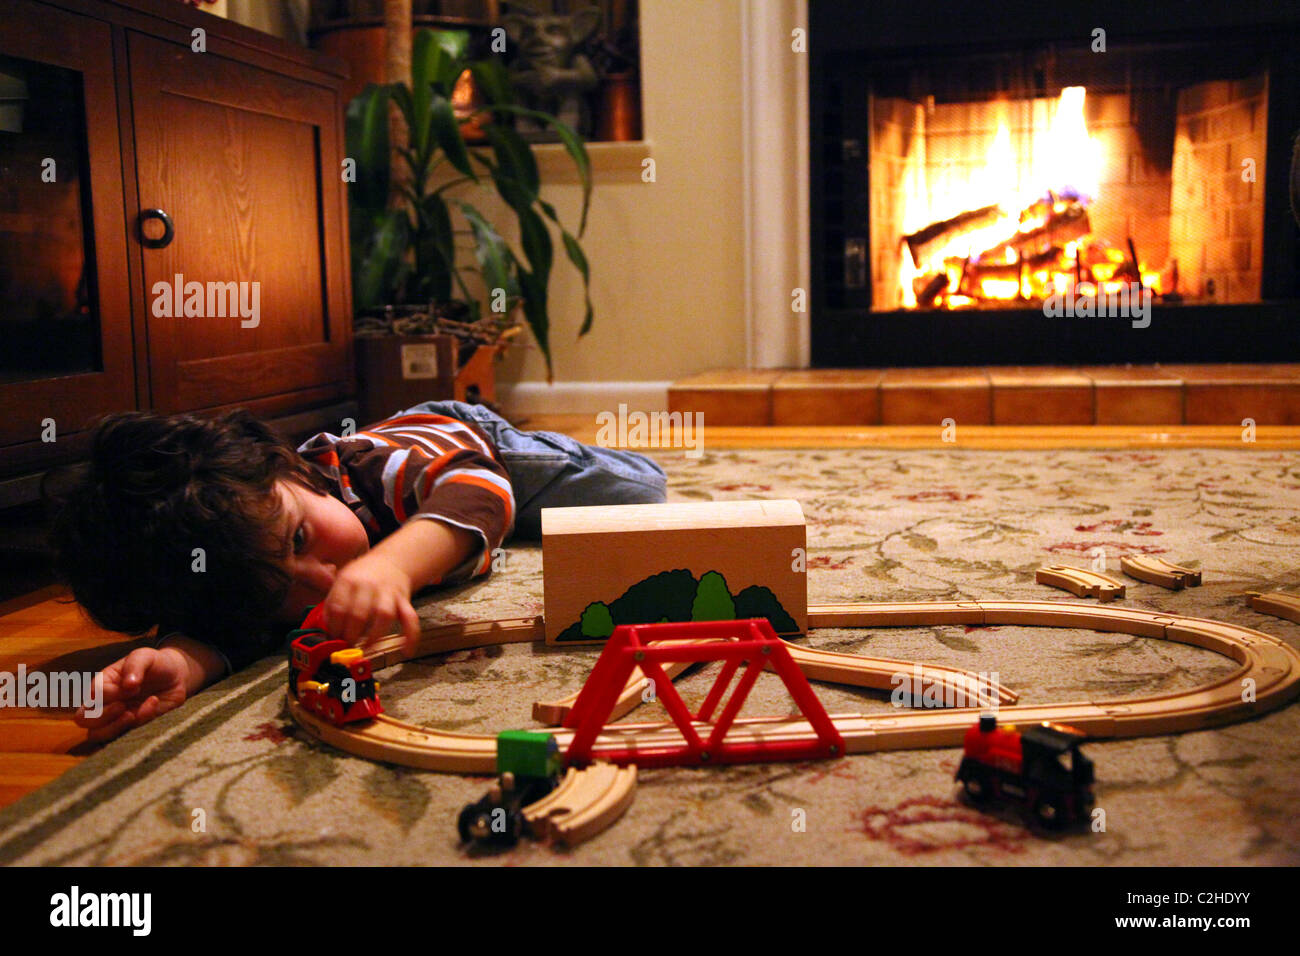 Young boy playing with toy trains - Stock Image